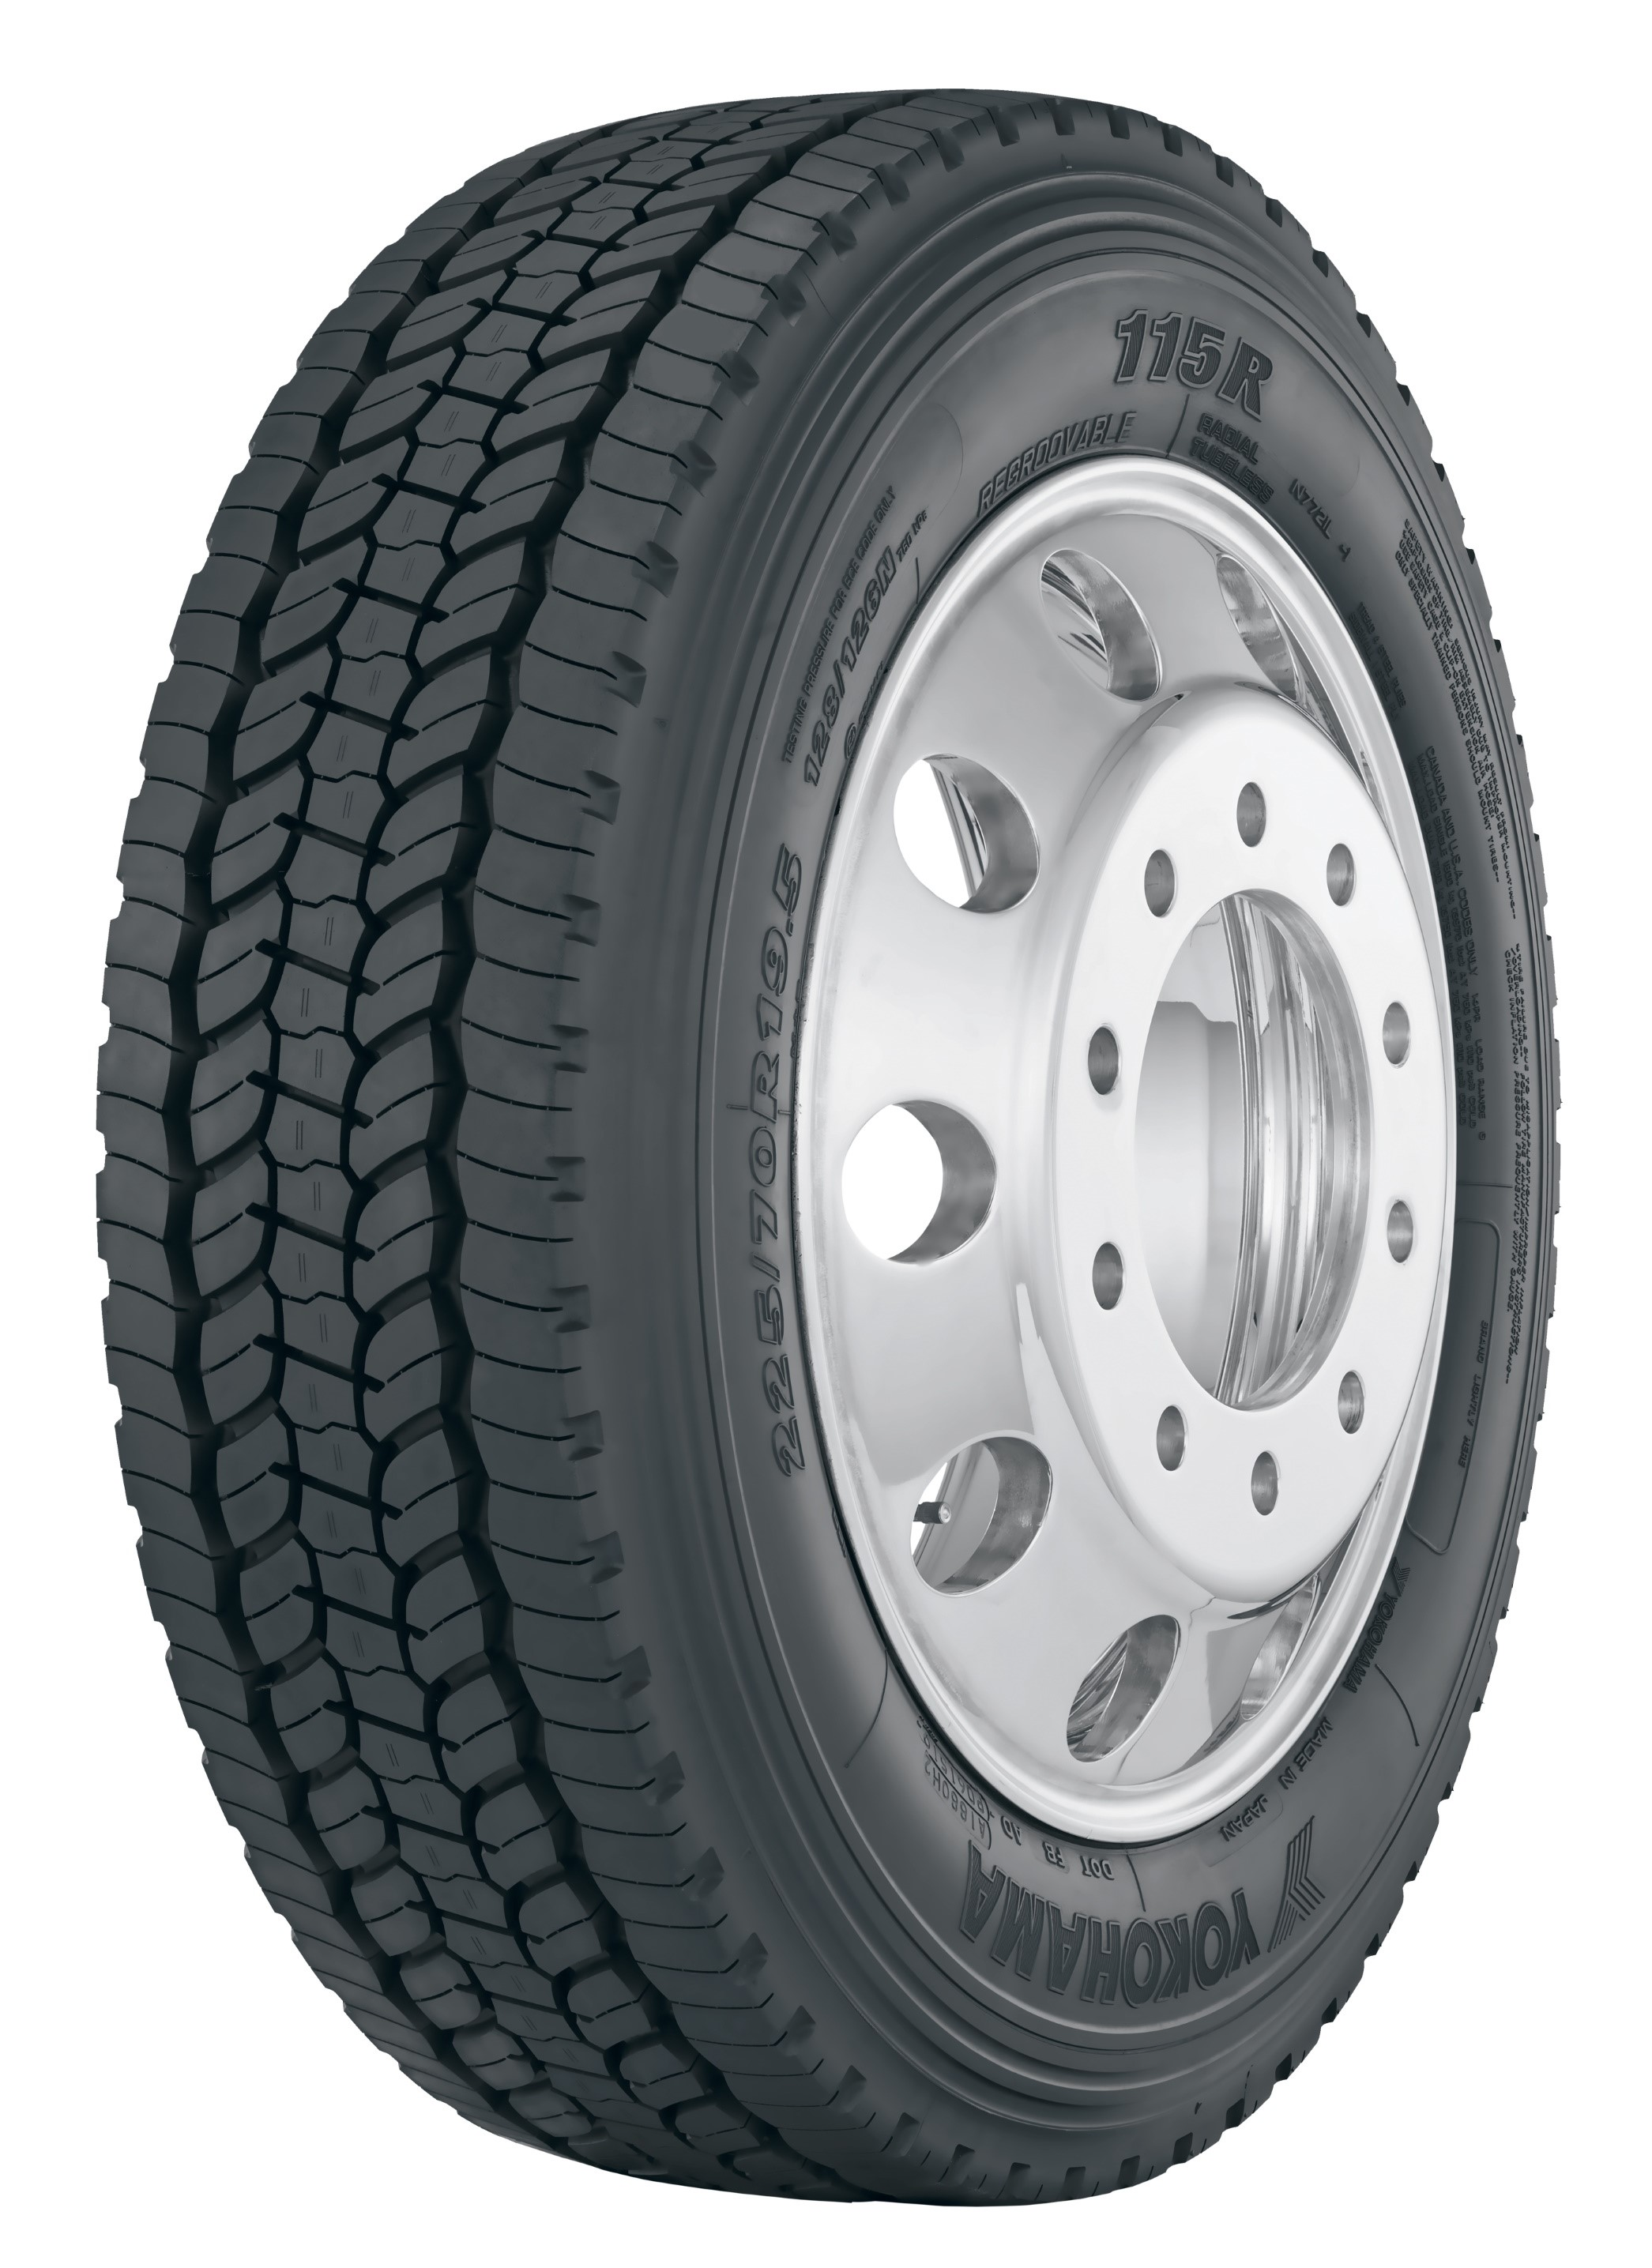 Yokohama Commercial Truck Tire Gets New Size